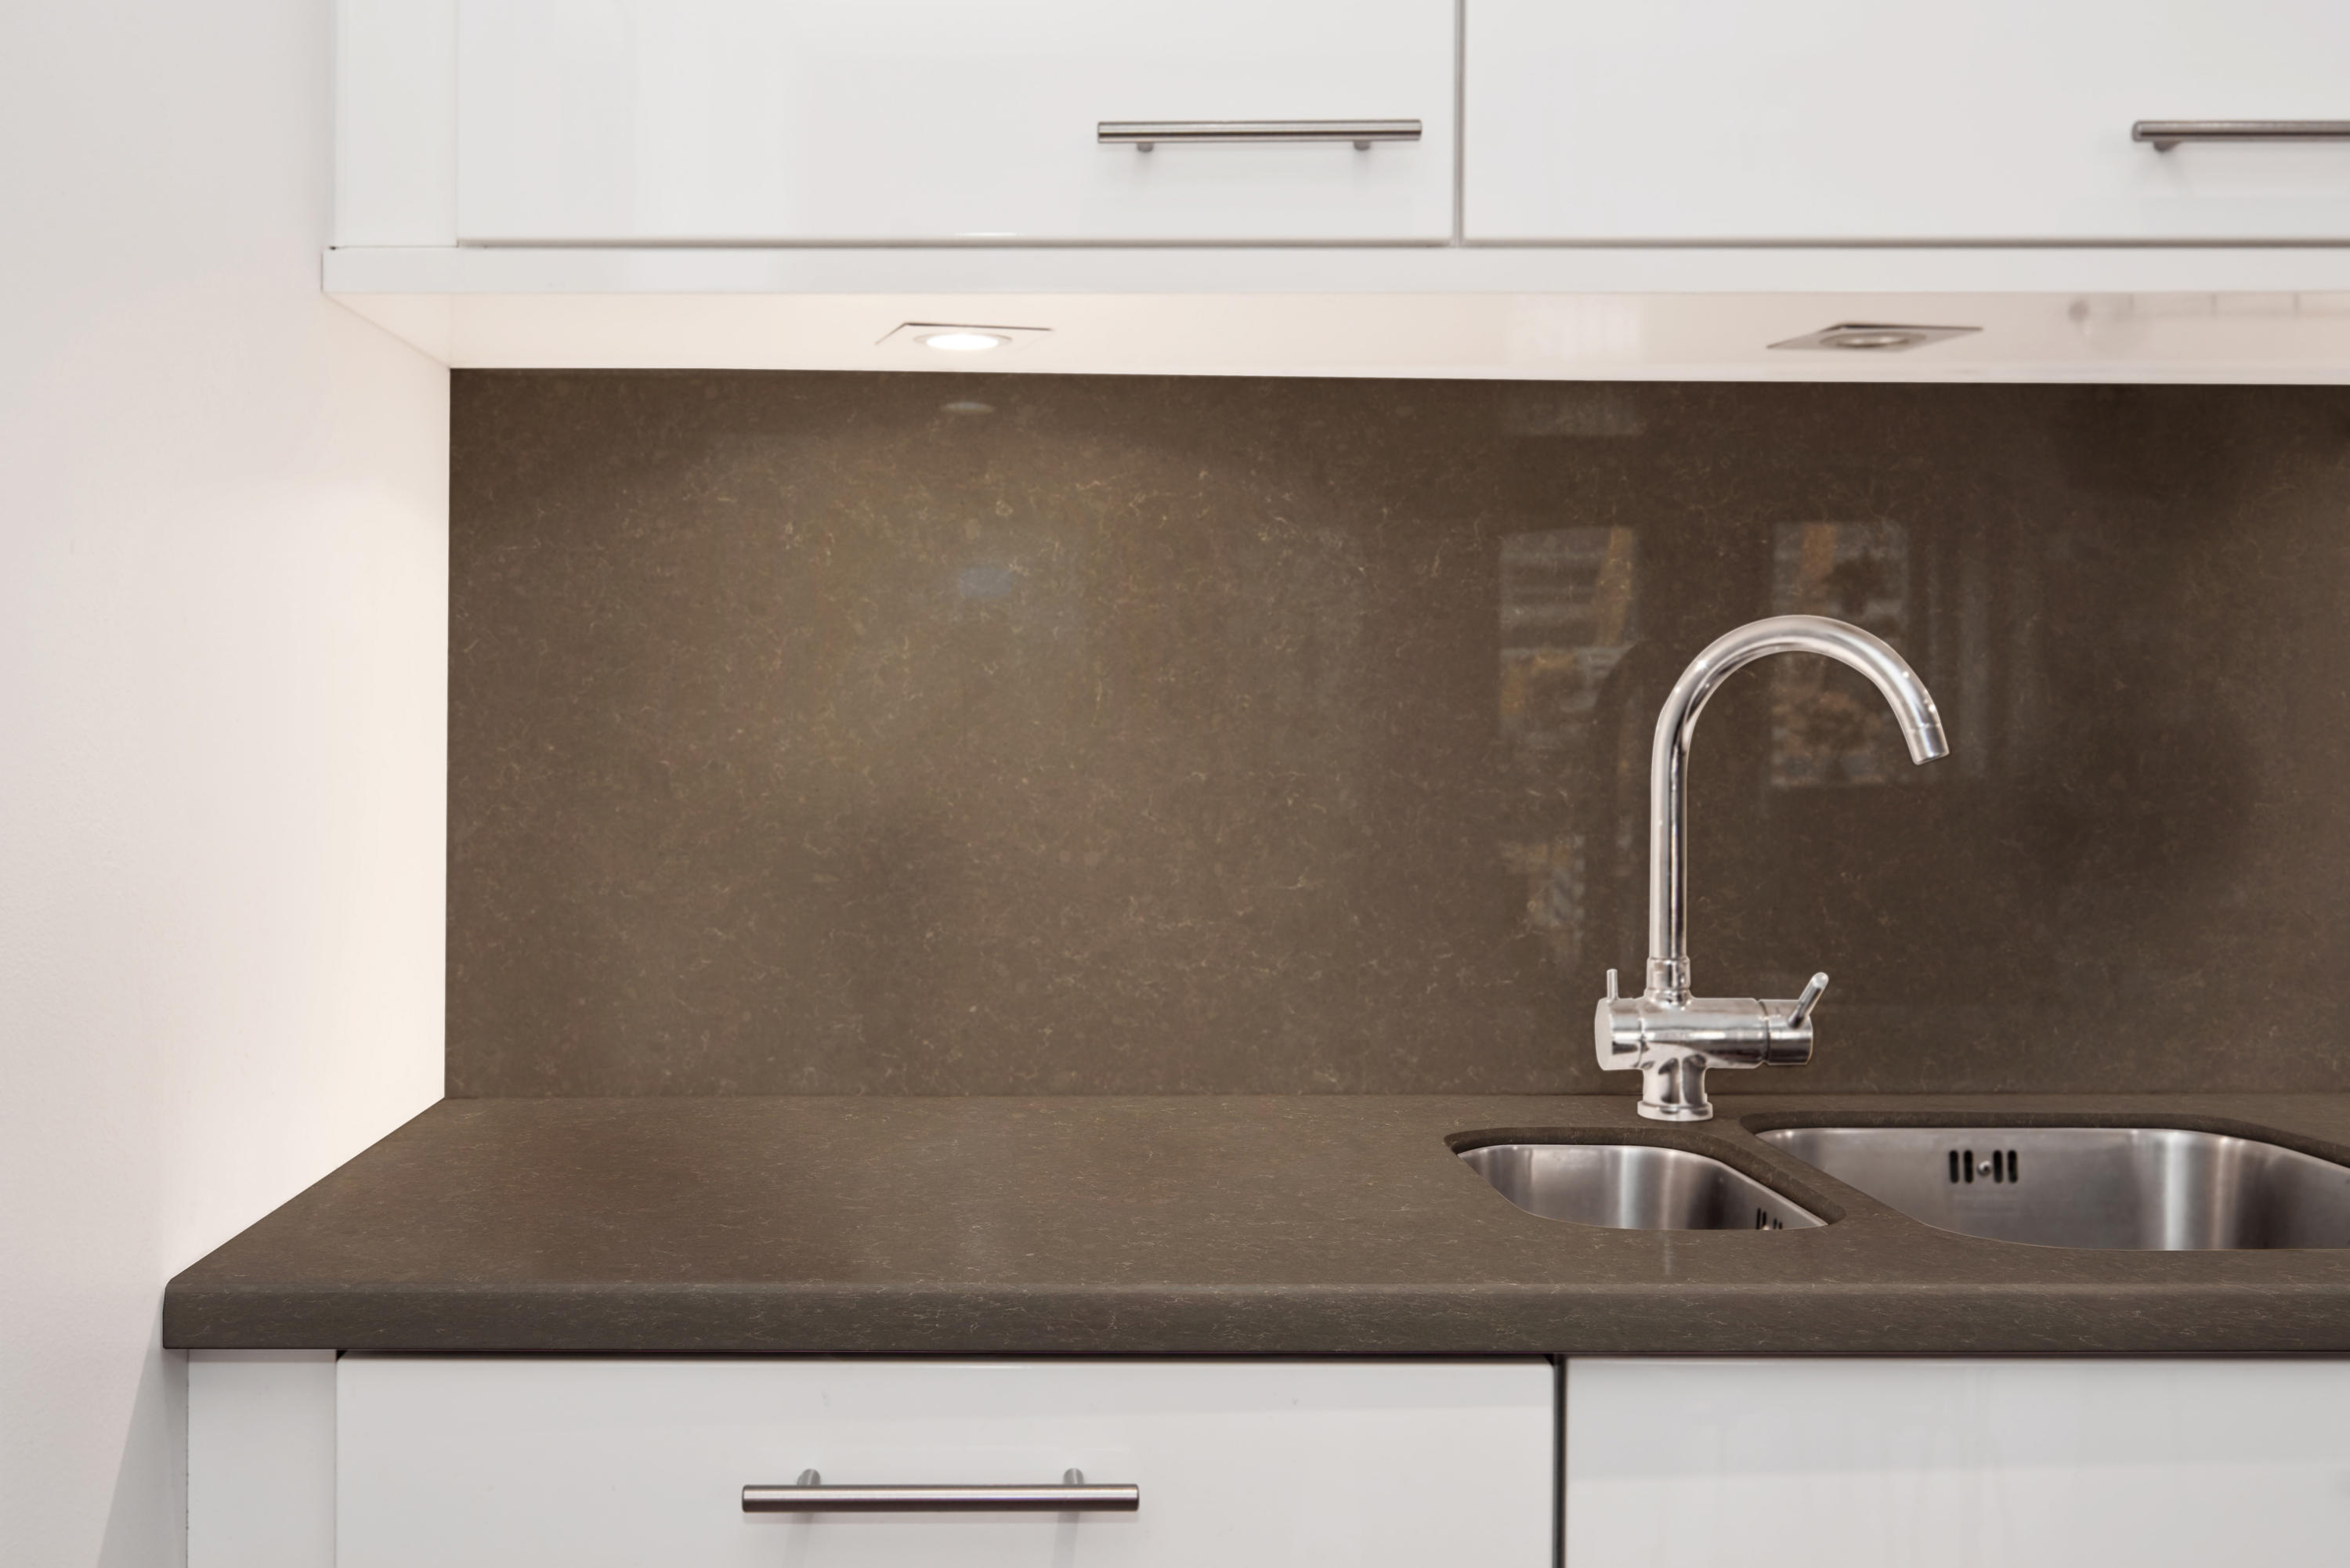 Silestone Marengo Mineral Composite Panels From